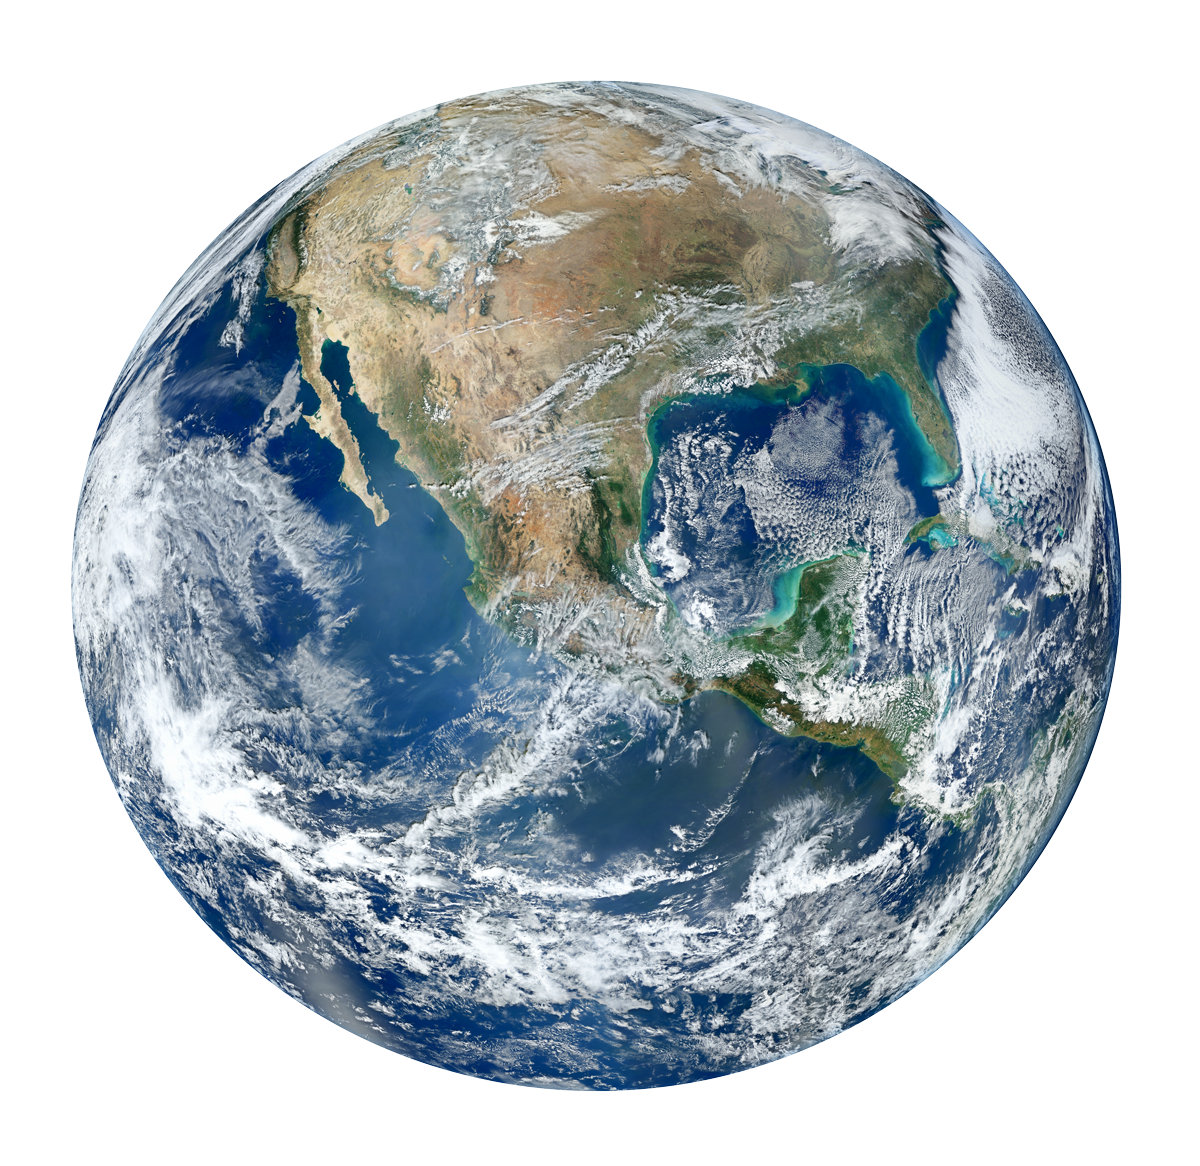 Clipart world atmosphere earth. Planet globe png image